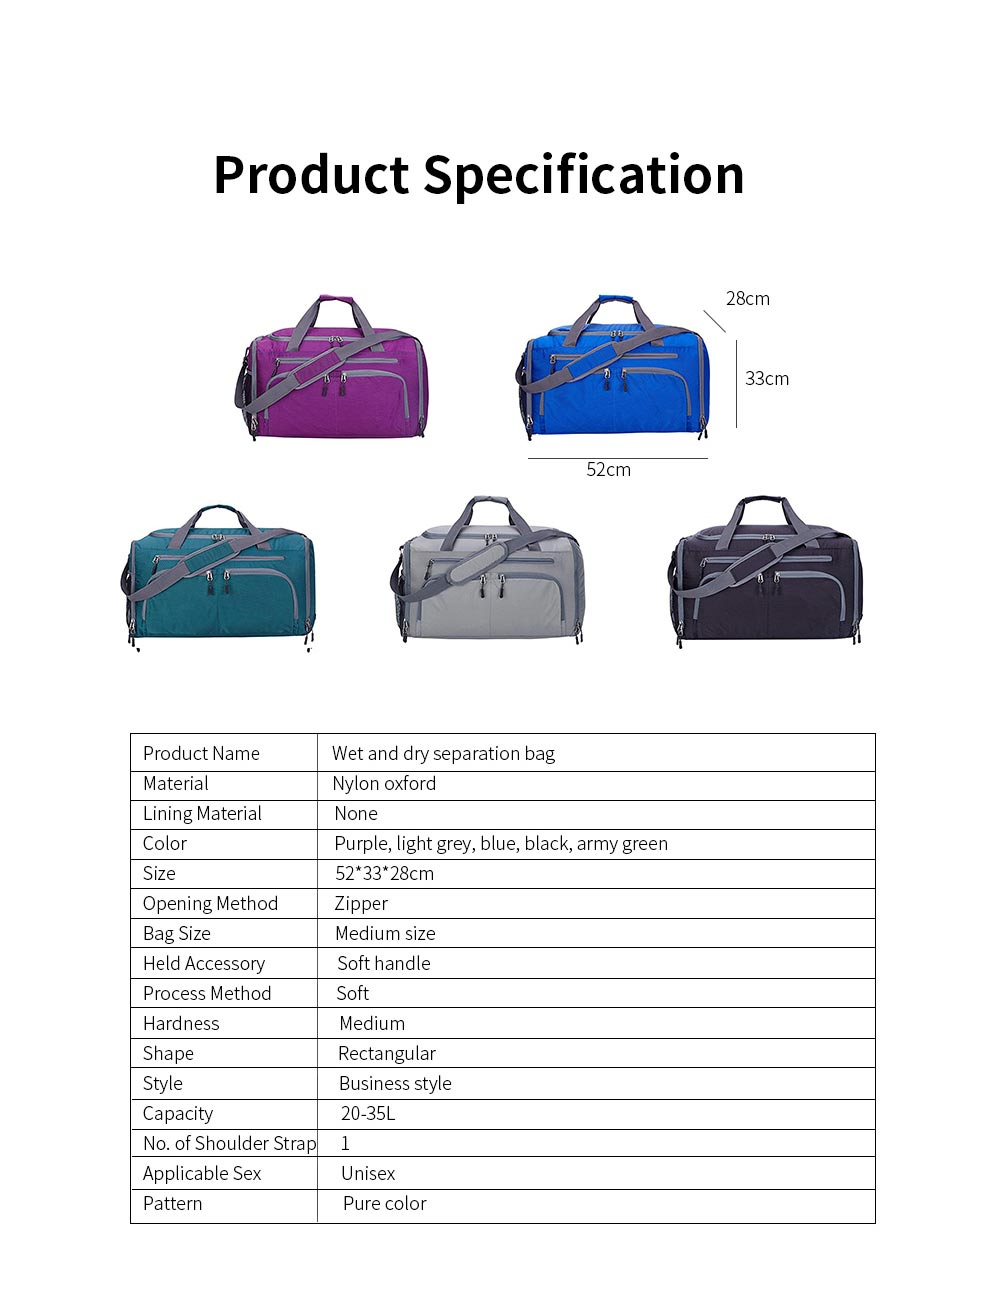 Nylon Oxford Wet and Dry Separation Bag with Two-way Zipper Major Pocket Durable Waterproof Separate Shoe Pocket Unisex Travelling Bag Large Capacity Valise Storage Bag 7